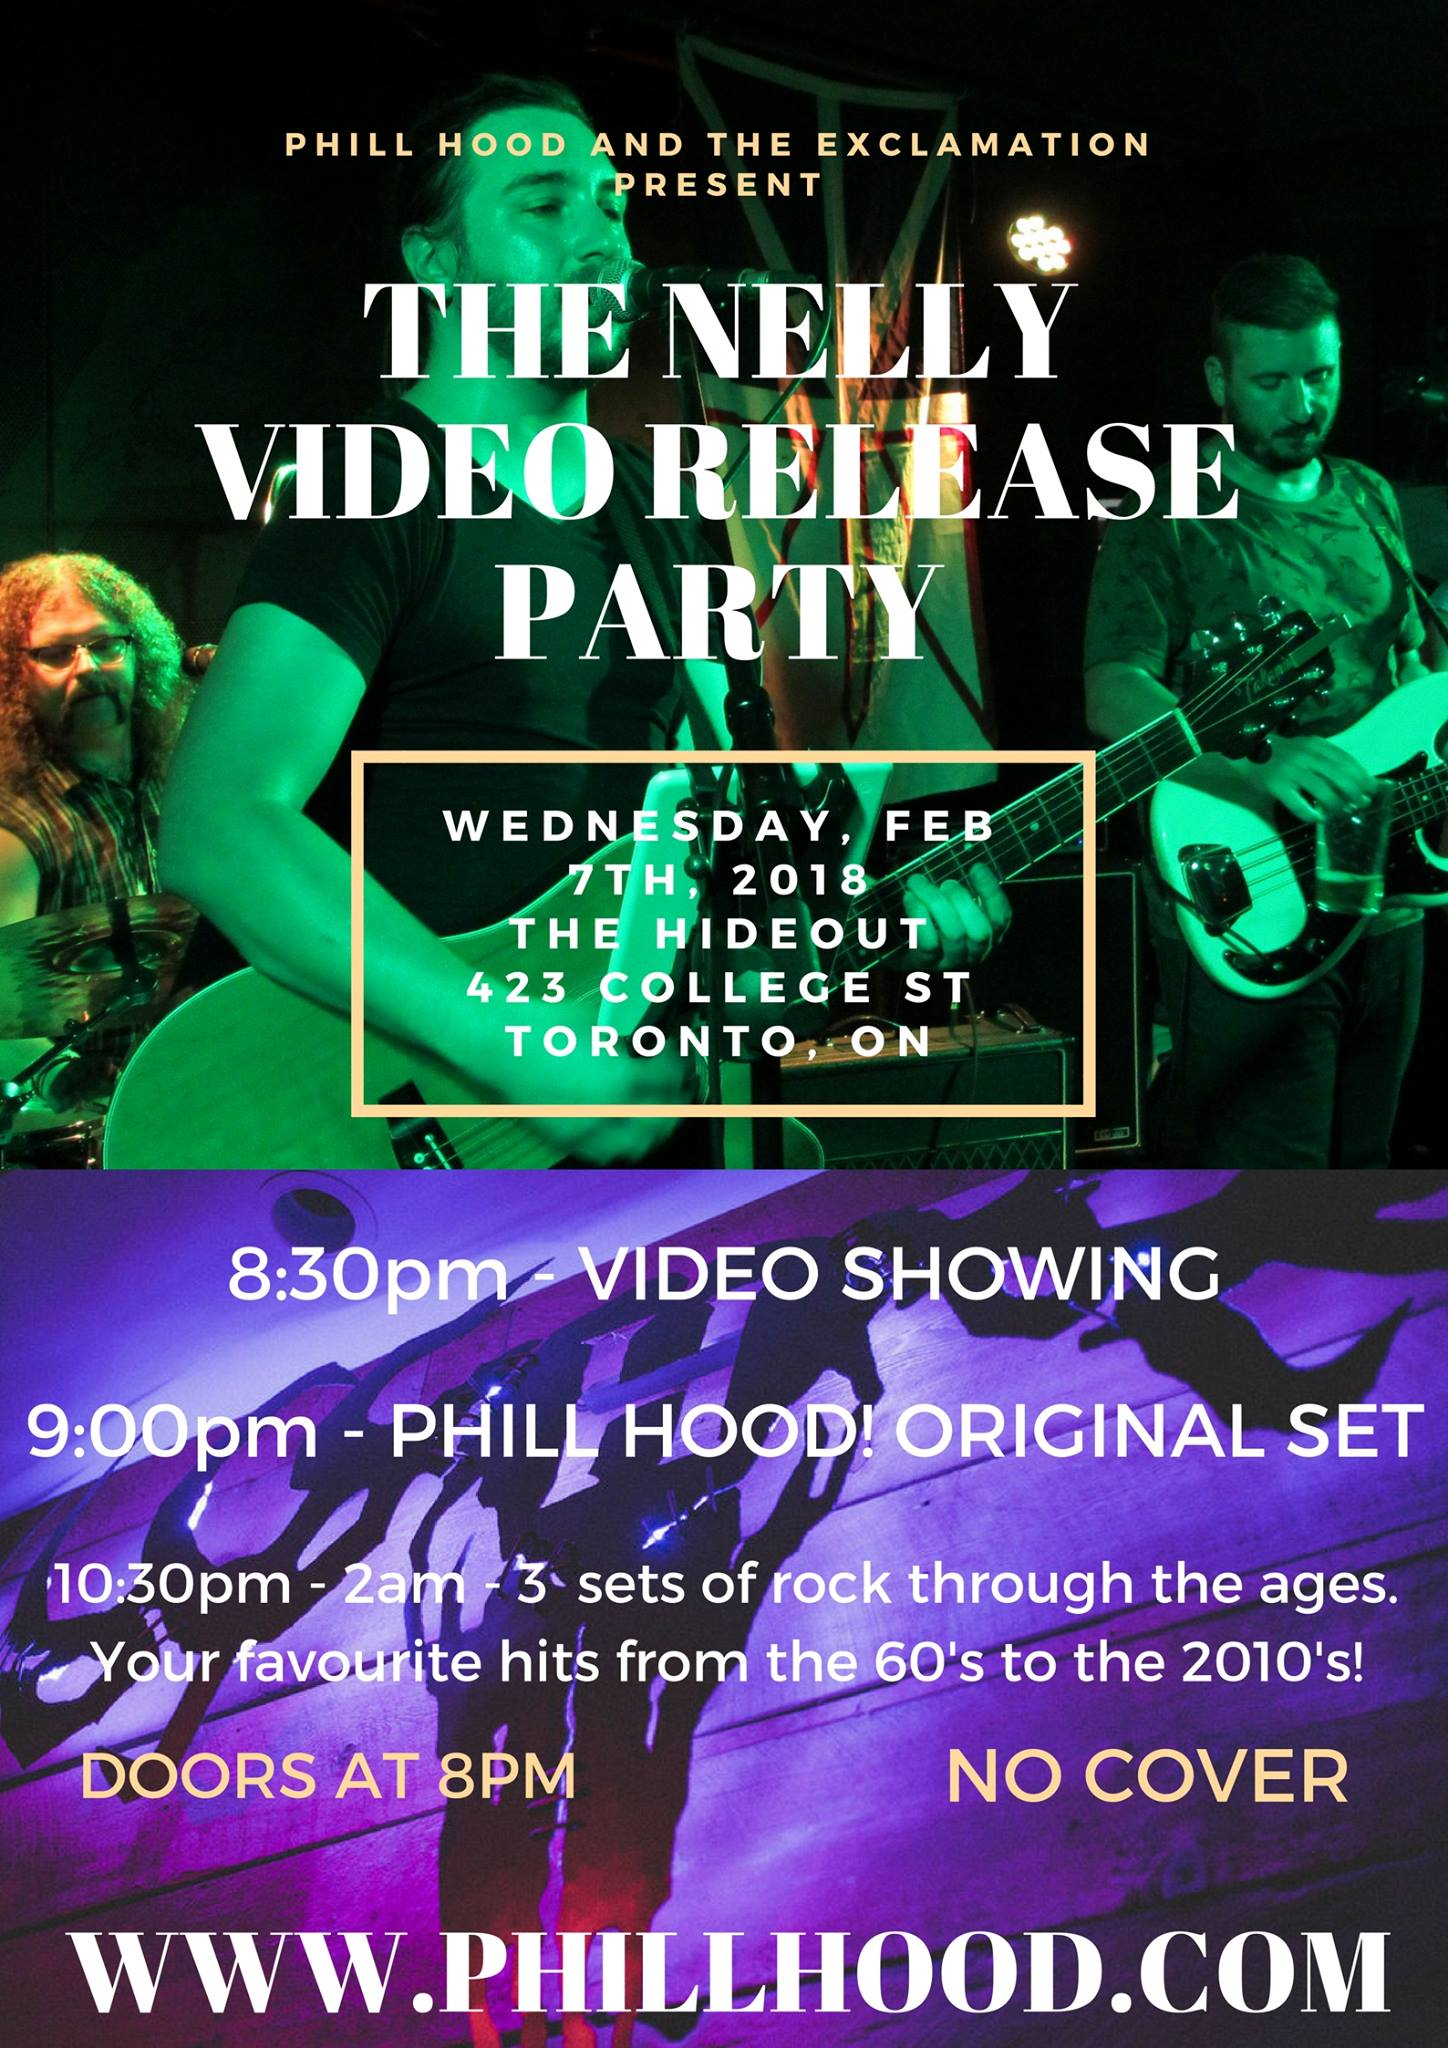 """Hey Toronto! It's been awhile, hasn't it? We invite you to come out to The Hideout Toronto on February 7th for our official video release party for """"Nelly"""". We'll be doing a showing of the video on The Hideout's sweet projector screens and top notch sound system before hitting the stage to do a complete original set for you all, followed by 3 sets of covers! You'll also be happy to know that there will be no cover, but we will have plenty of merch for sale for those of you who would like to take our music home with you. Can't wait to see you all there!  8PM - Doors 8:30PM - Video Showing 9PM - Original Set 10:30pm - 2am - The Exclamation plays all of your favourite covers!  This event is made possible and sponsored by  The Hideout Toronto  and  A Feedback Loop  Podcast."""